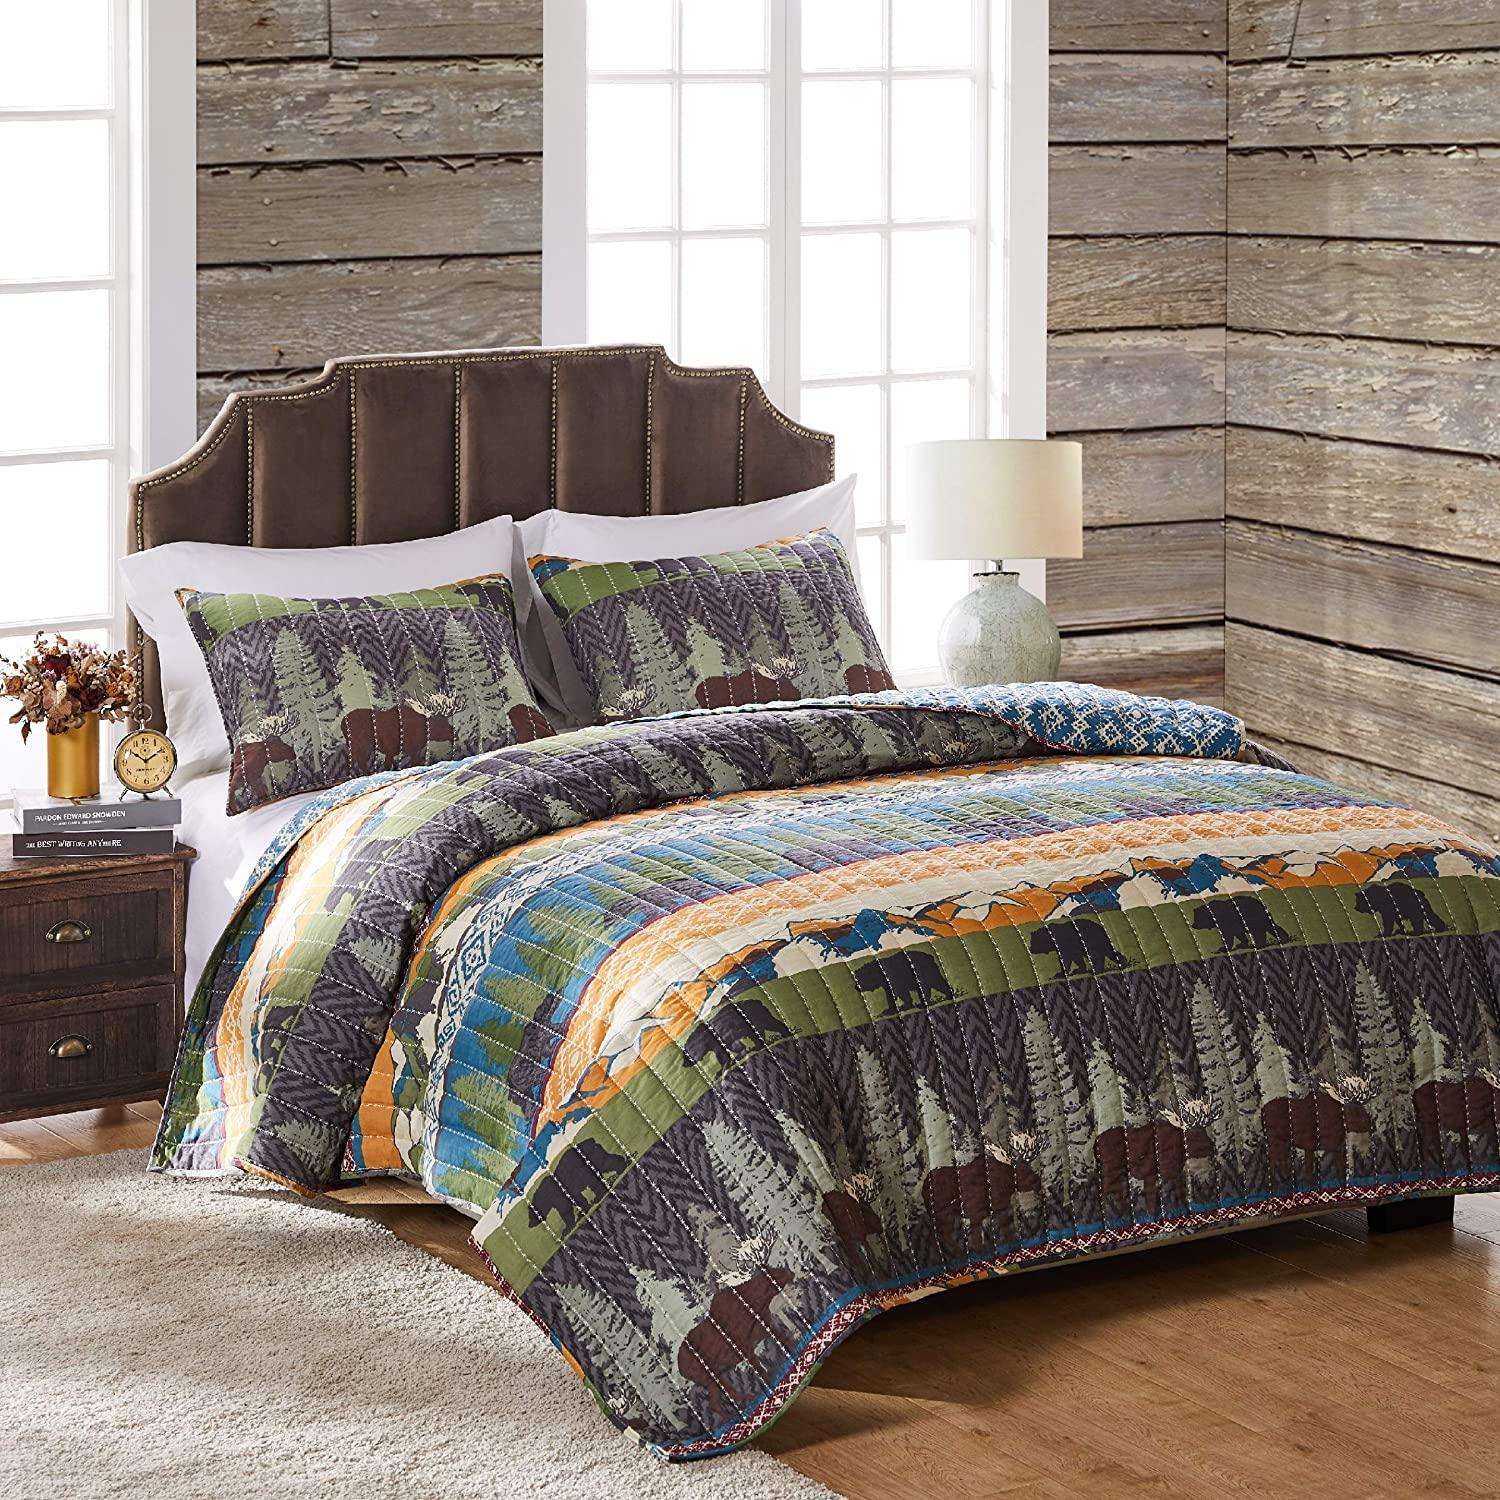 Greenland Home Black Bear Lodge Quilt Set, 2-Piece Twin